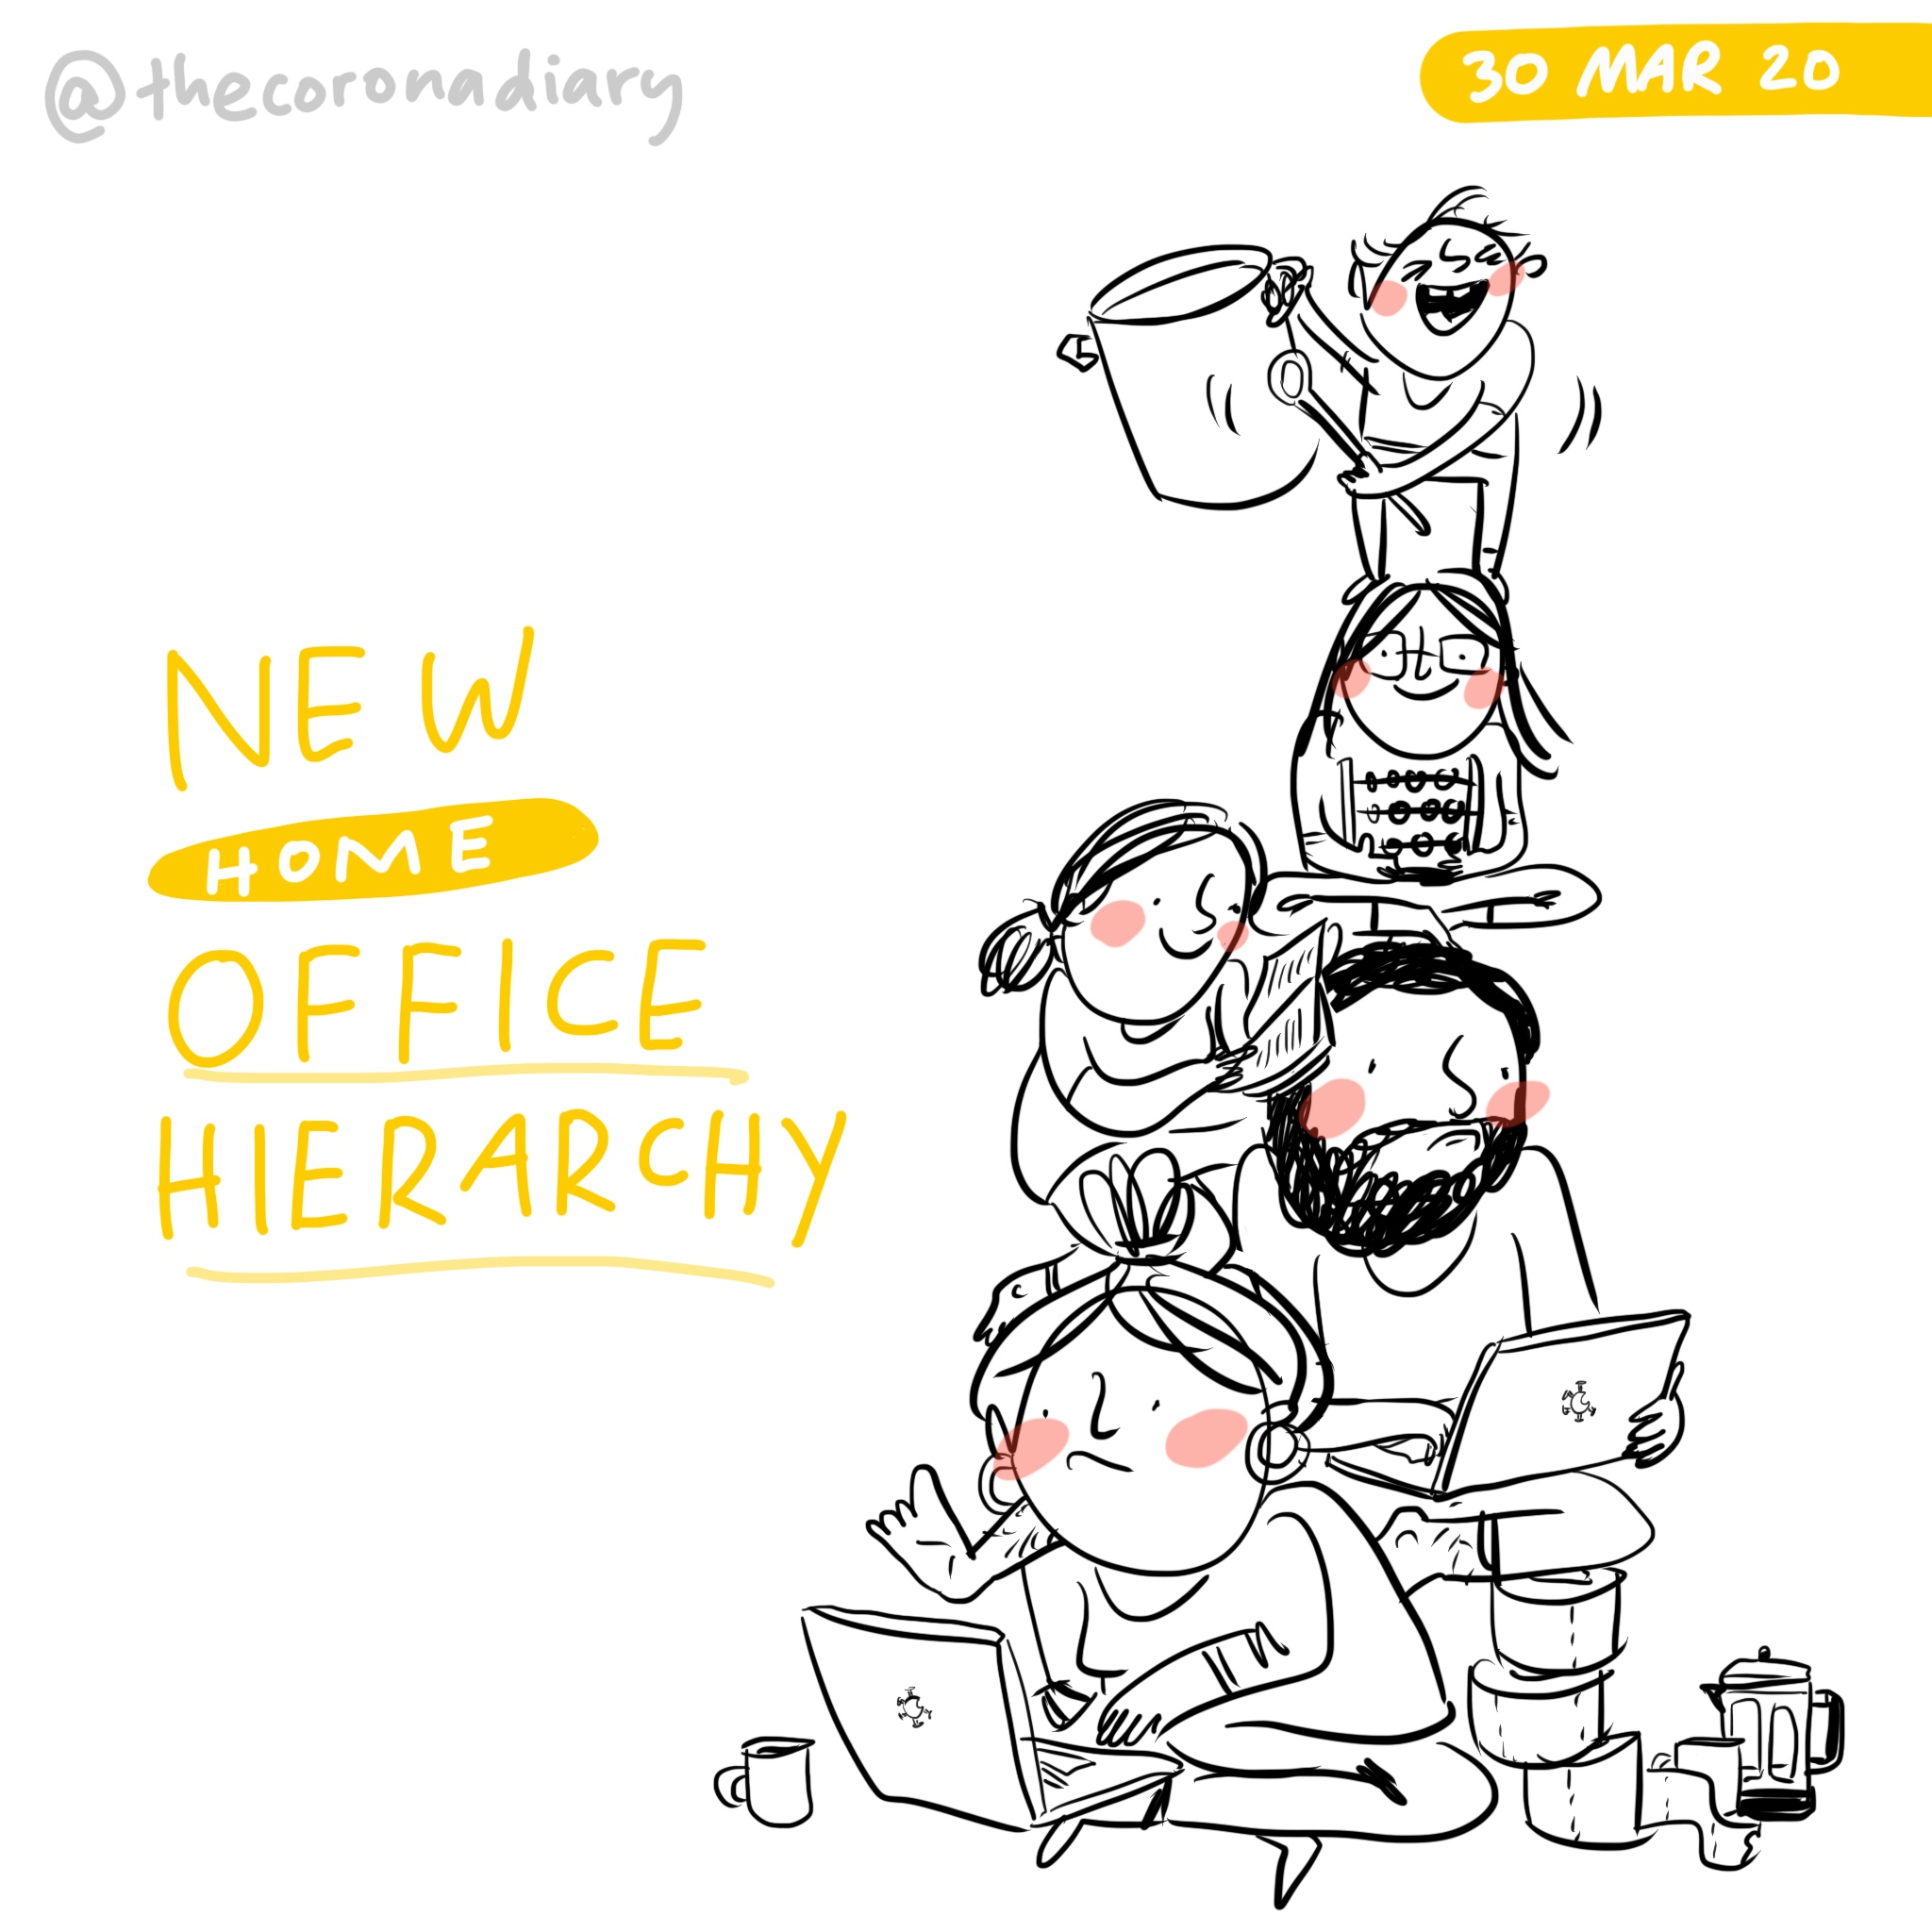 Home office hierarchy